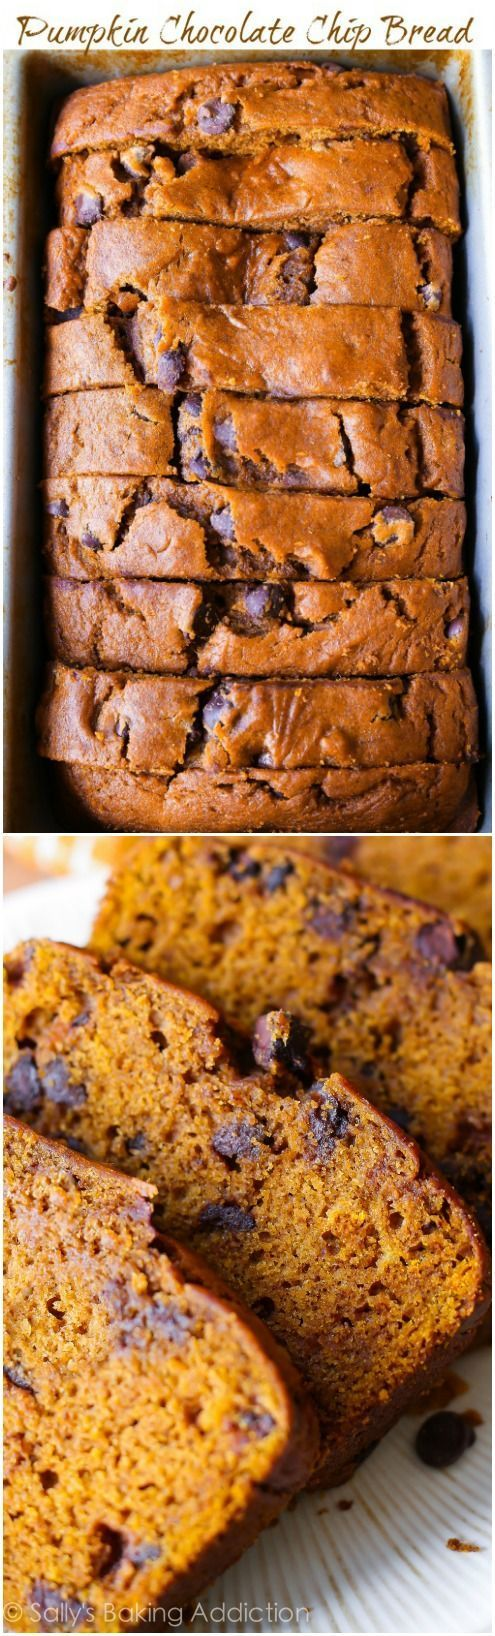 It's pumpkin season! Make the most of this season by whipping by this pumpkin chocolate chip bread.